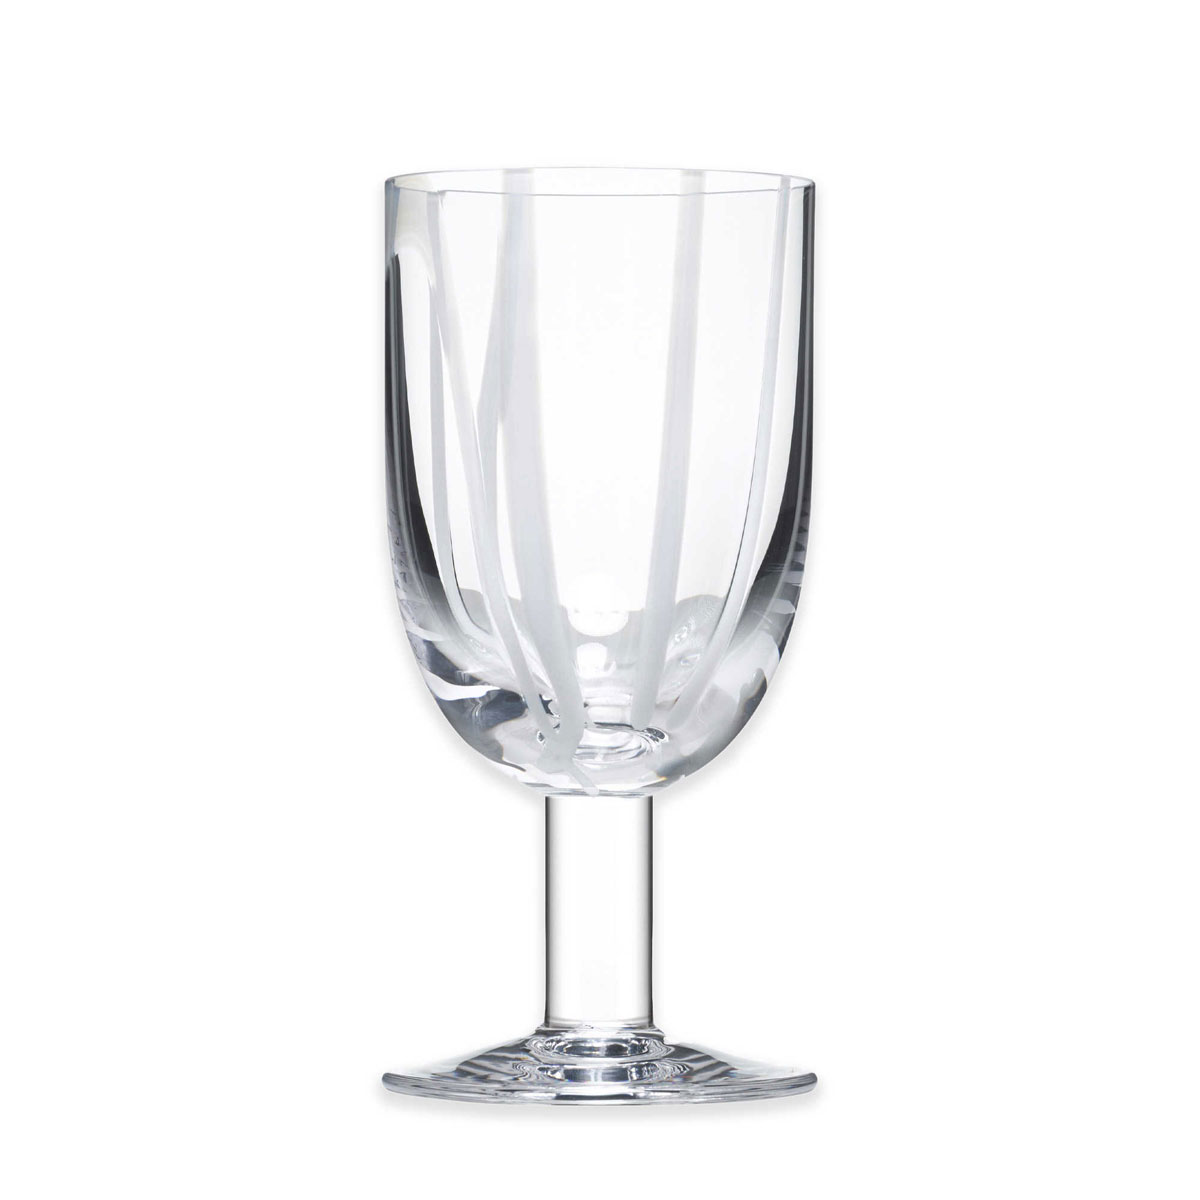 Kosta Boda Contrast Crystal Wine Glass, White